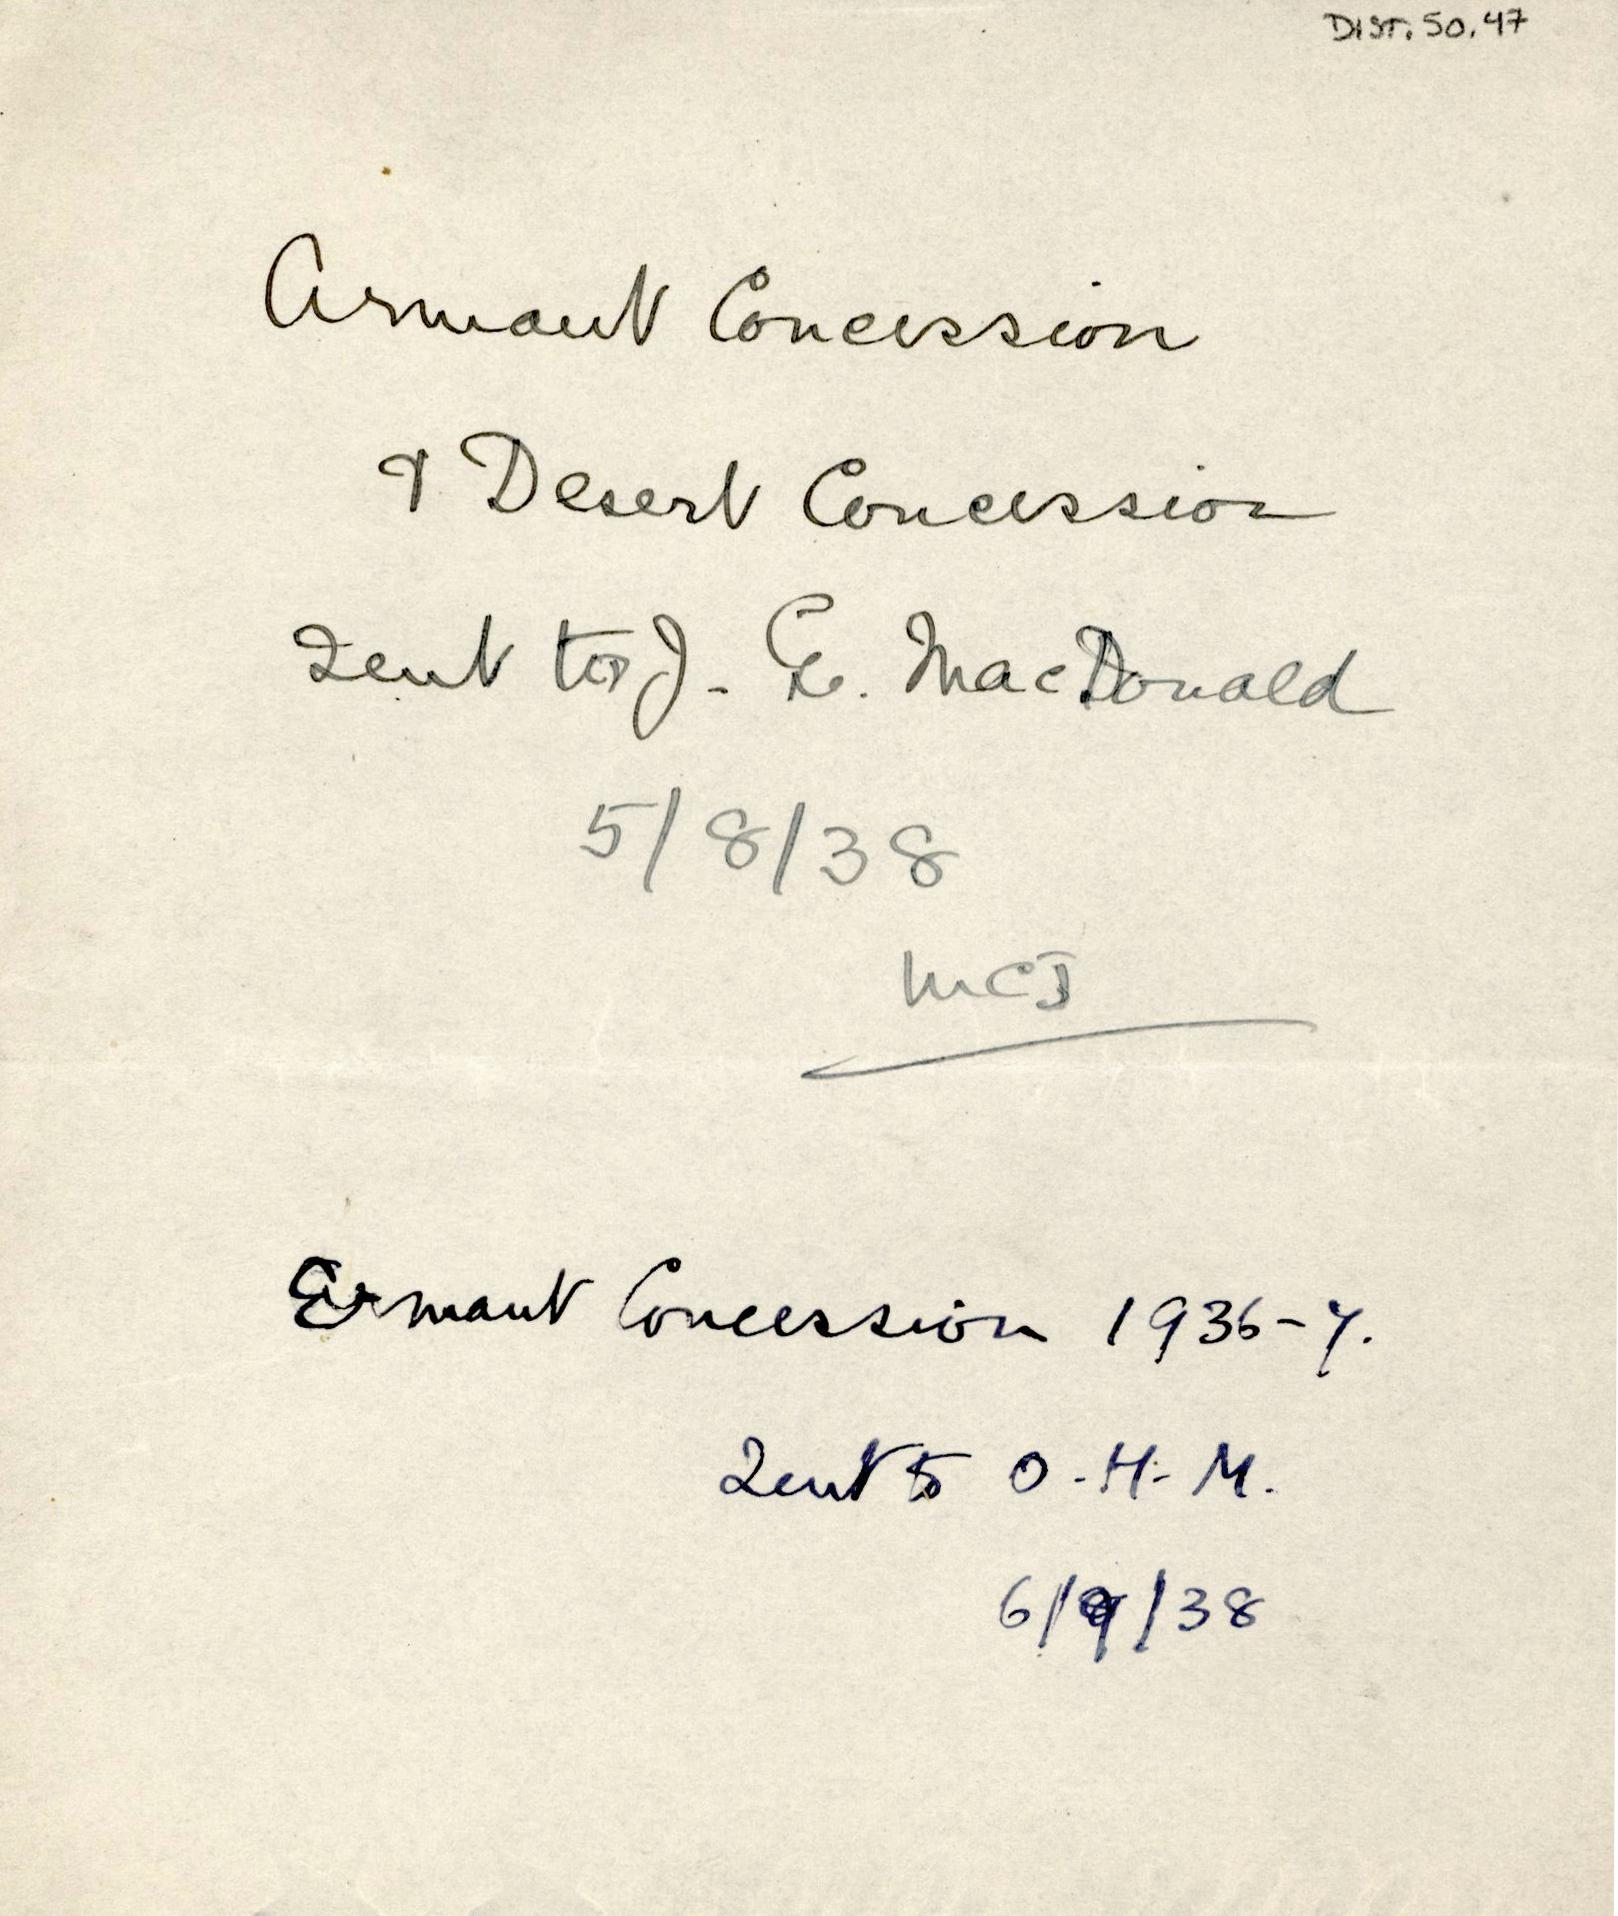 1926-39 correspondence with Antiquities Service DIST.50.47